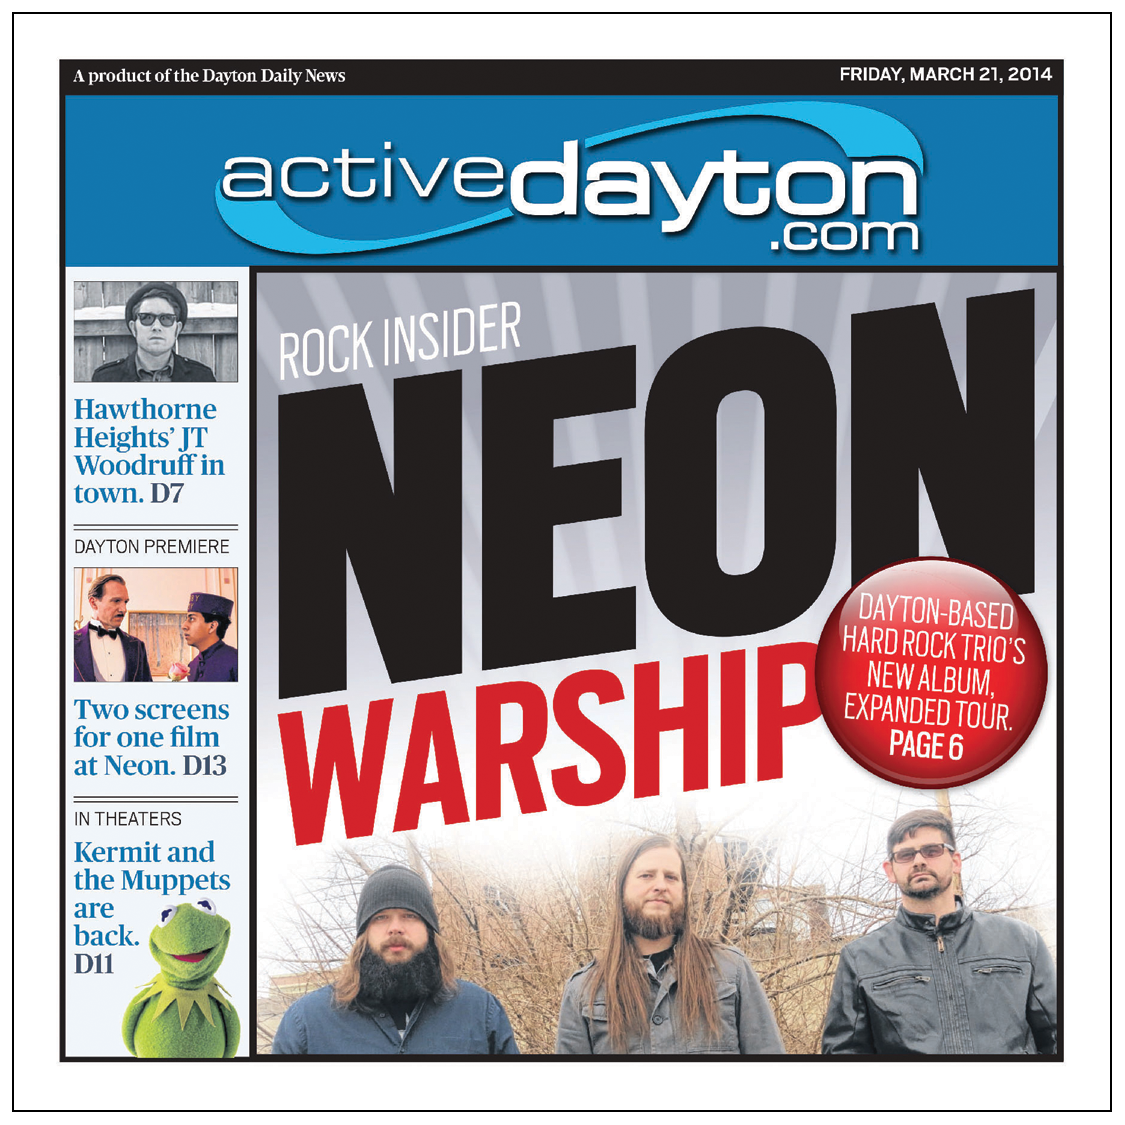 A pre-2015 ActiveDayton cover. This design attempted to put as much content on the cover as possible and in most cases, was far too much.